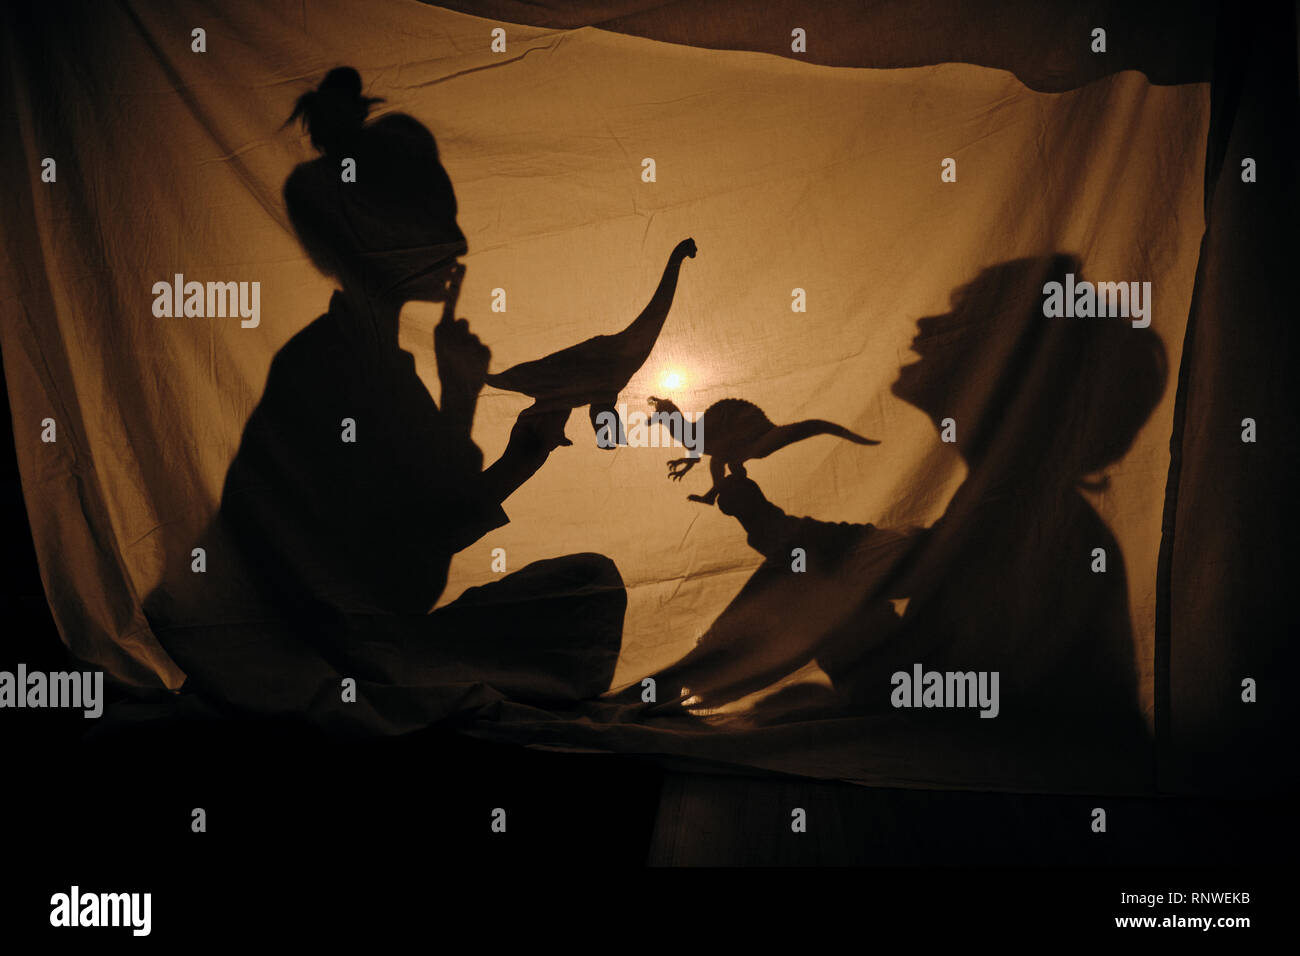 Silhouette of woman with kid playing behind sheet - Stock Image